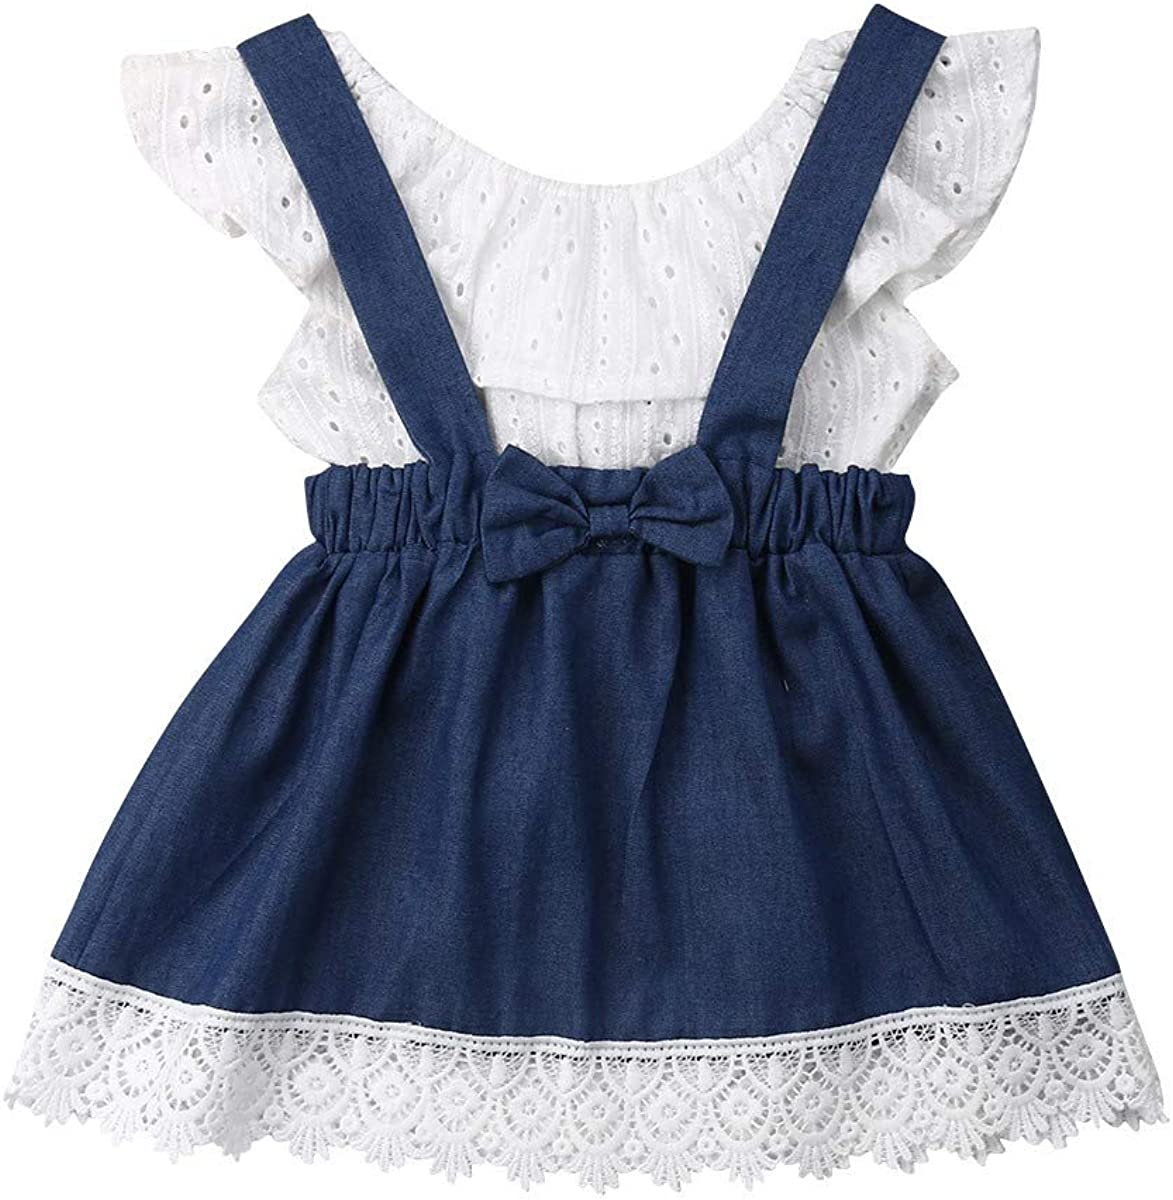 MIKI SHOP Spring Fashion Newborn Kids Baby Girls Off Shoulder Tops Skirt Outfits Clothes Summer